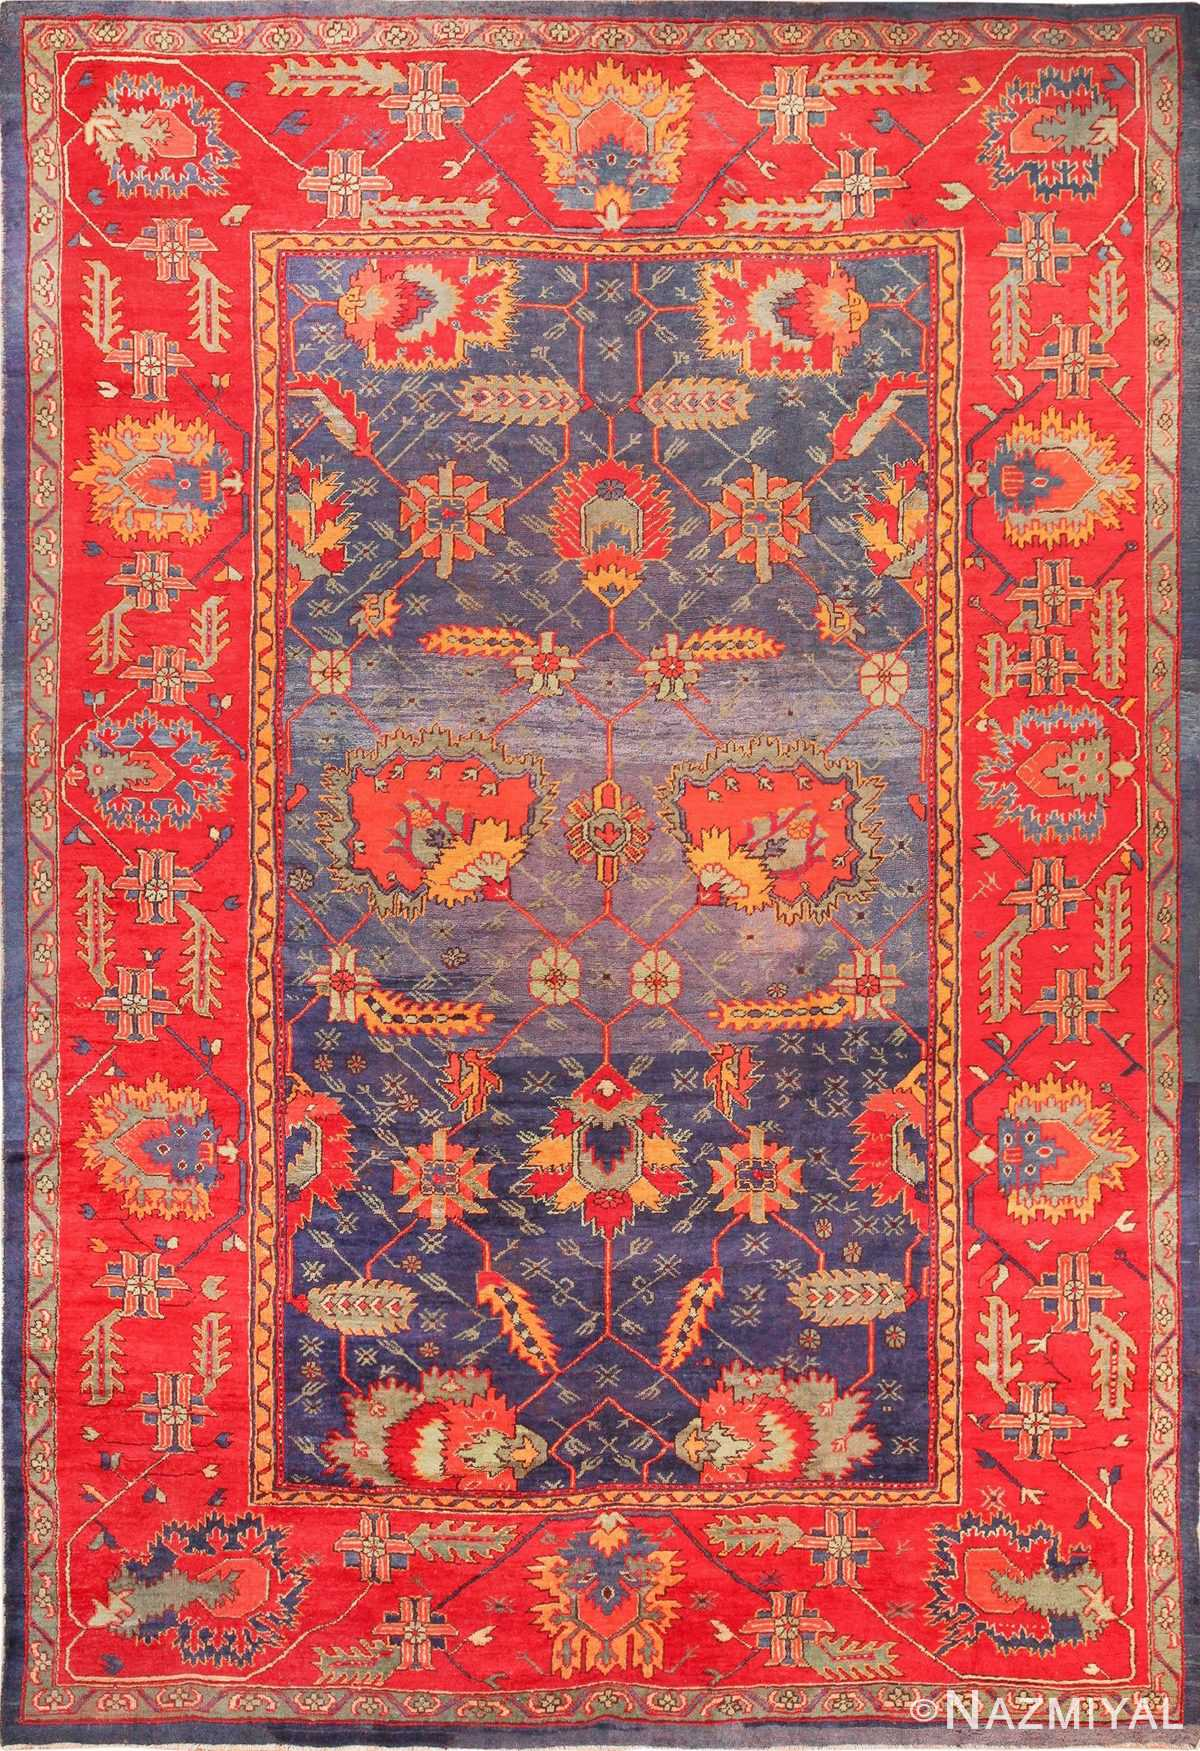 Antique Arts and Crafts Turkish Oushak Rug 49596 by Namziyal